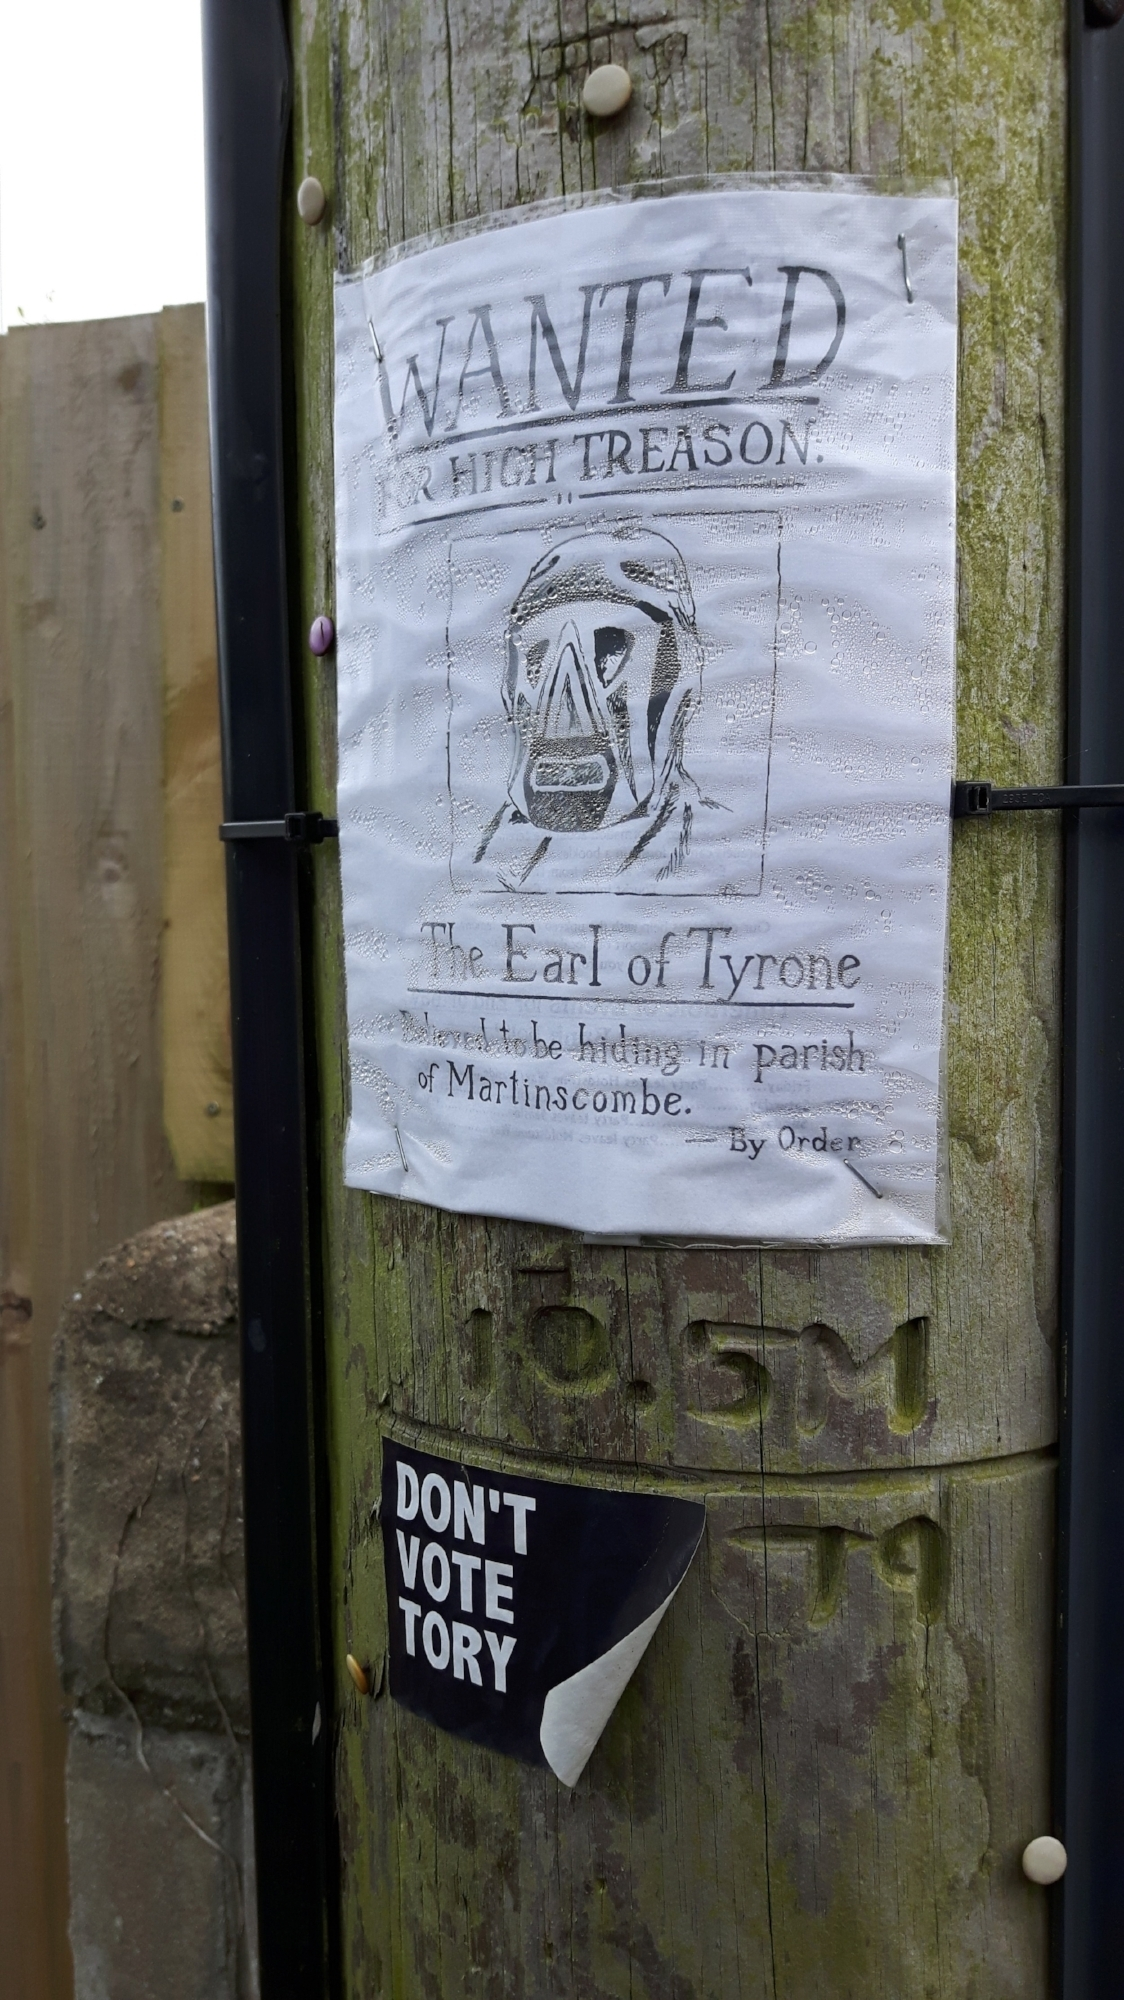 'Wanted' poster for the Earl of Rhone, Combe Martin